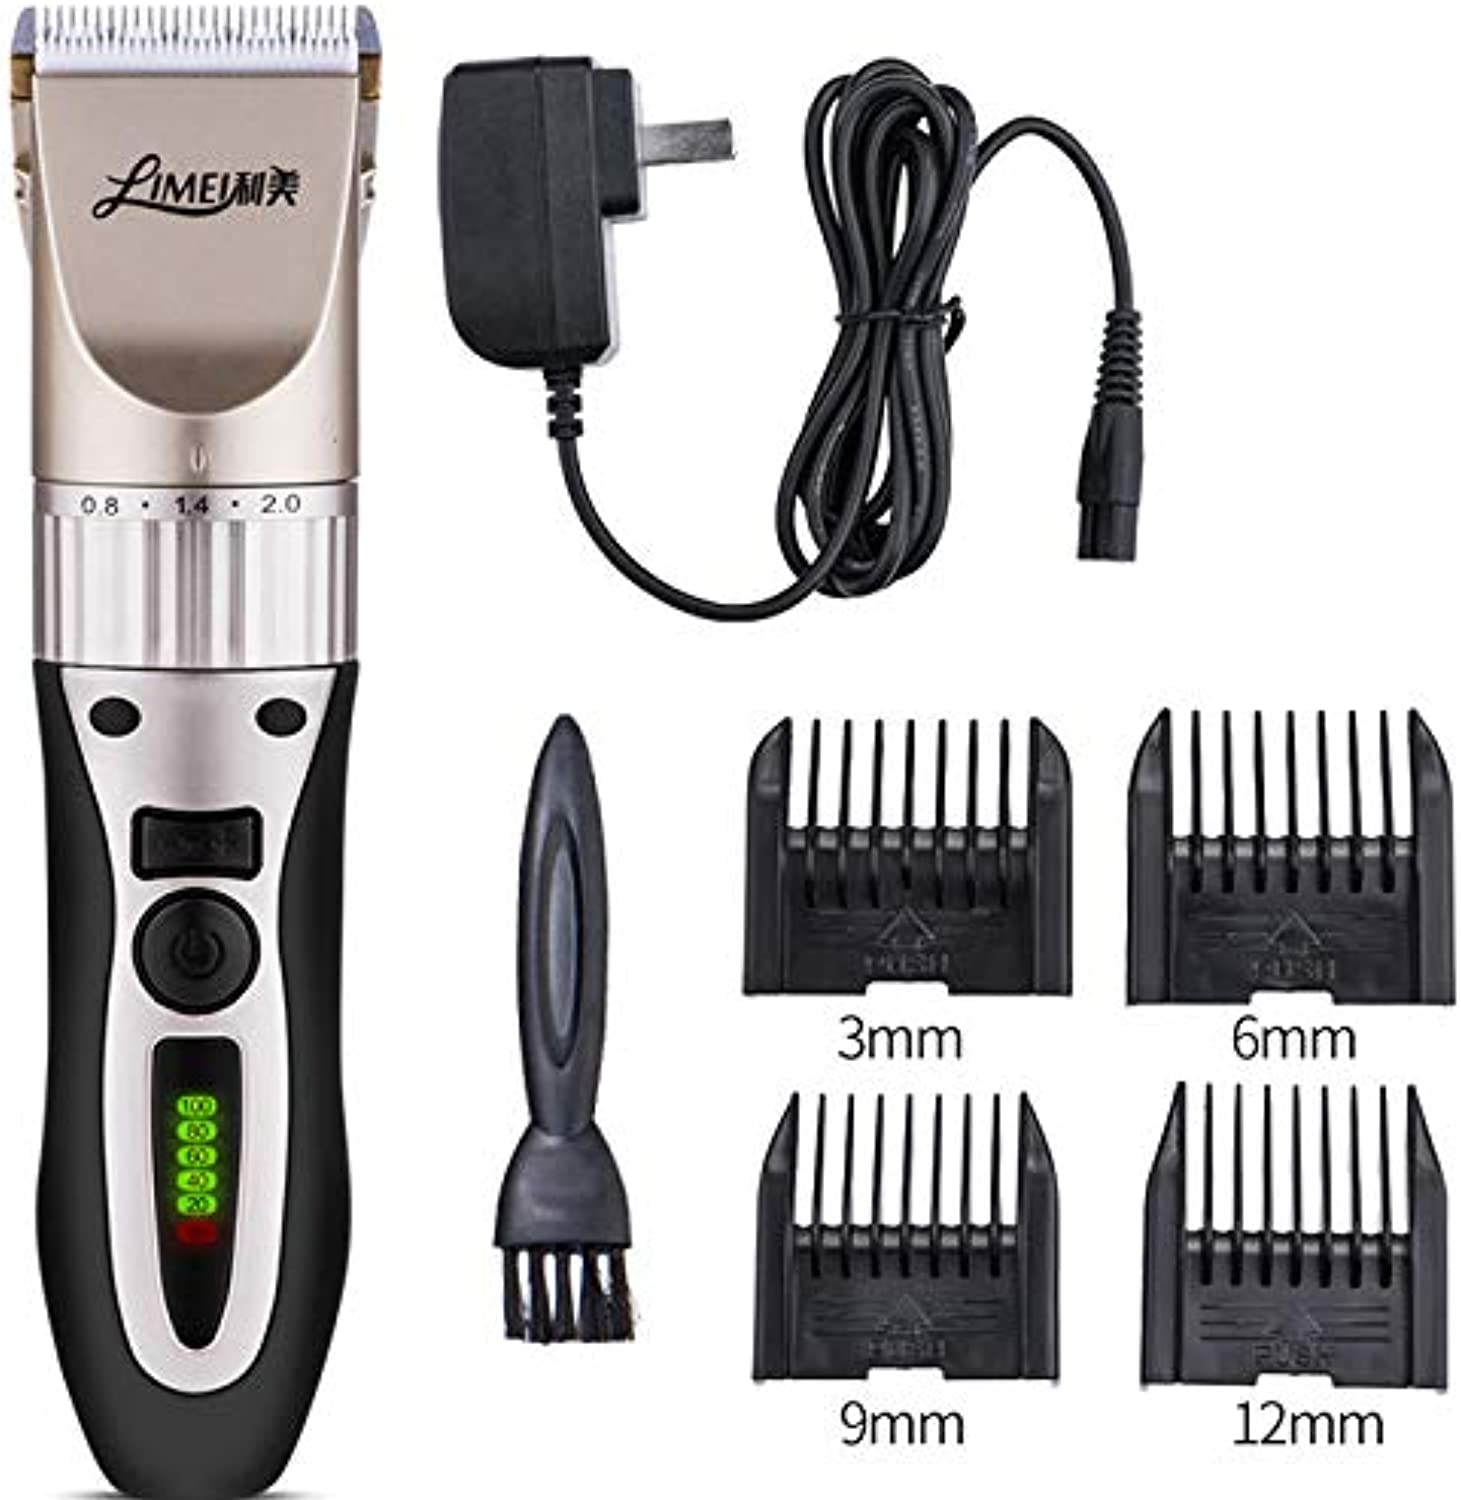 Professional Dog Grooming Clippers, Rechargeable Low Noise Cordless Dog Hair Trimmer Sharp Ceramic Blade Pet Grooming Tool for Dog Cat